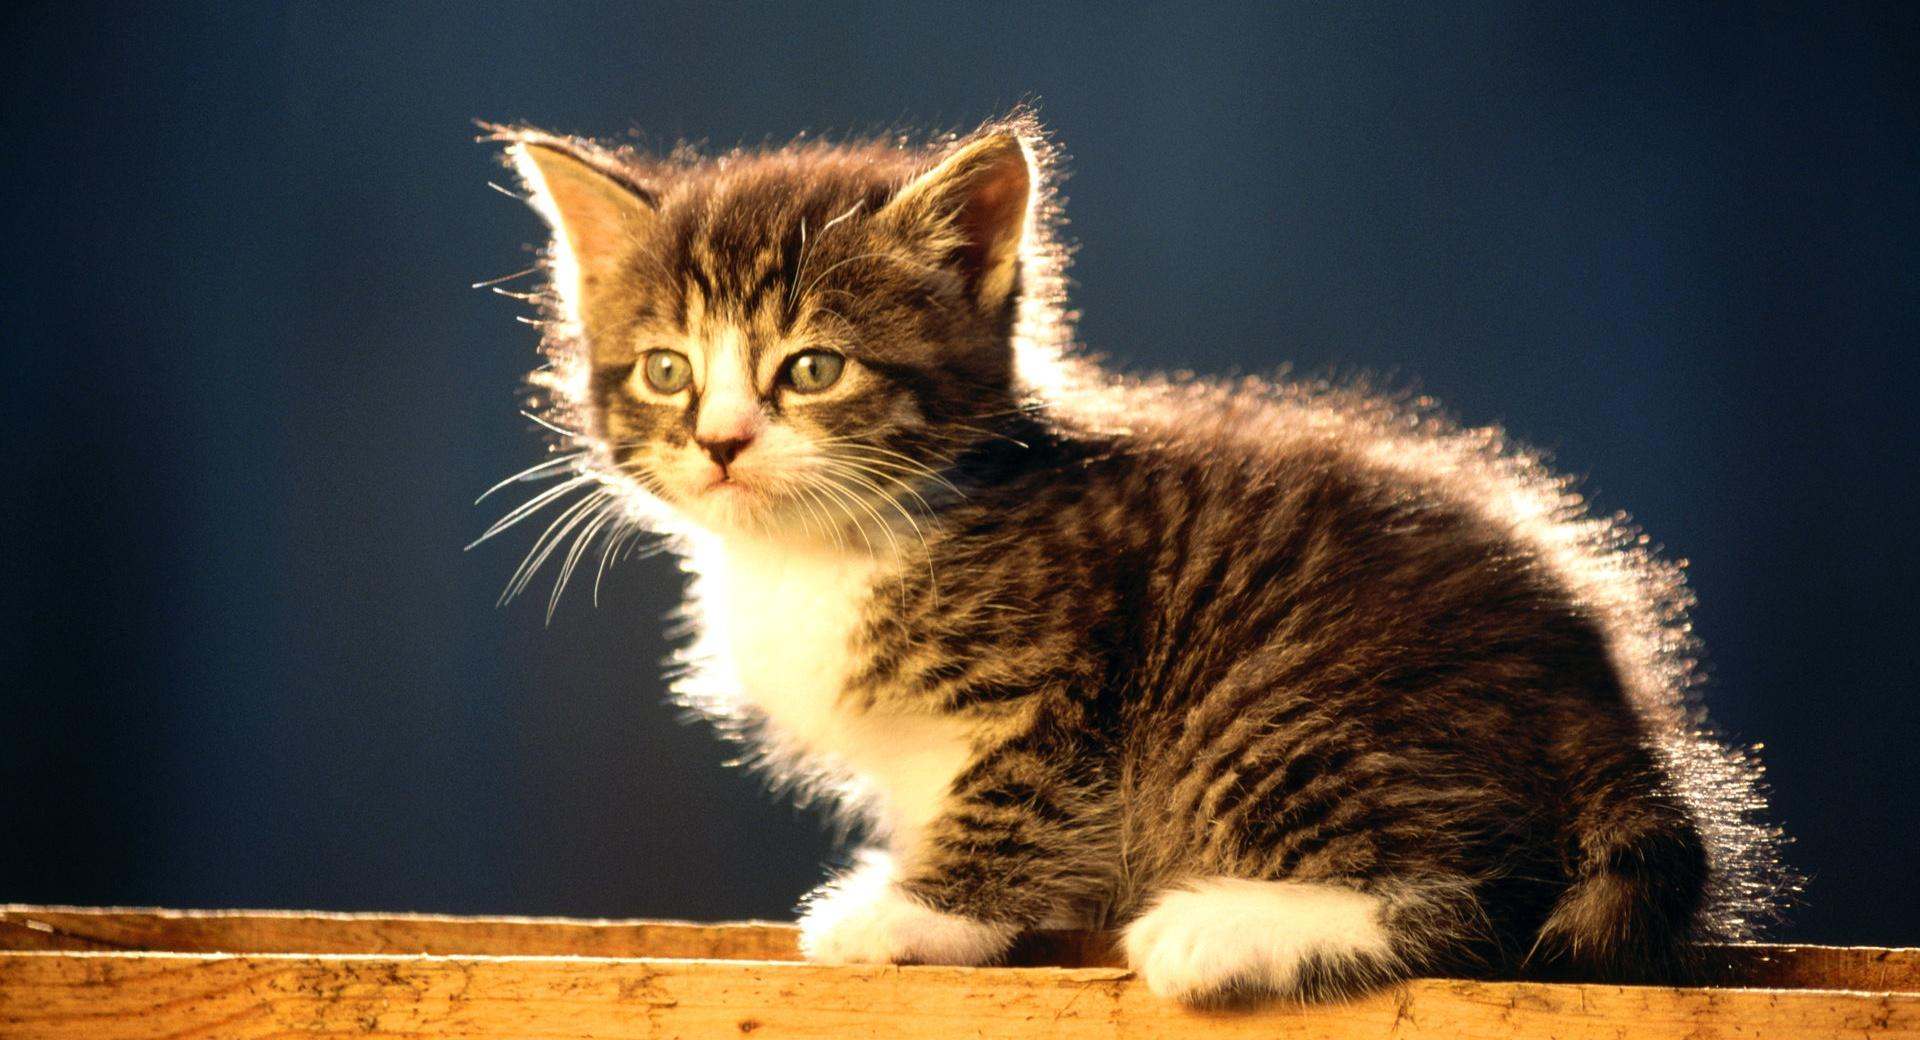 Cute Tabby Kitten wallpapers HD quality